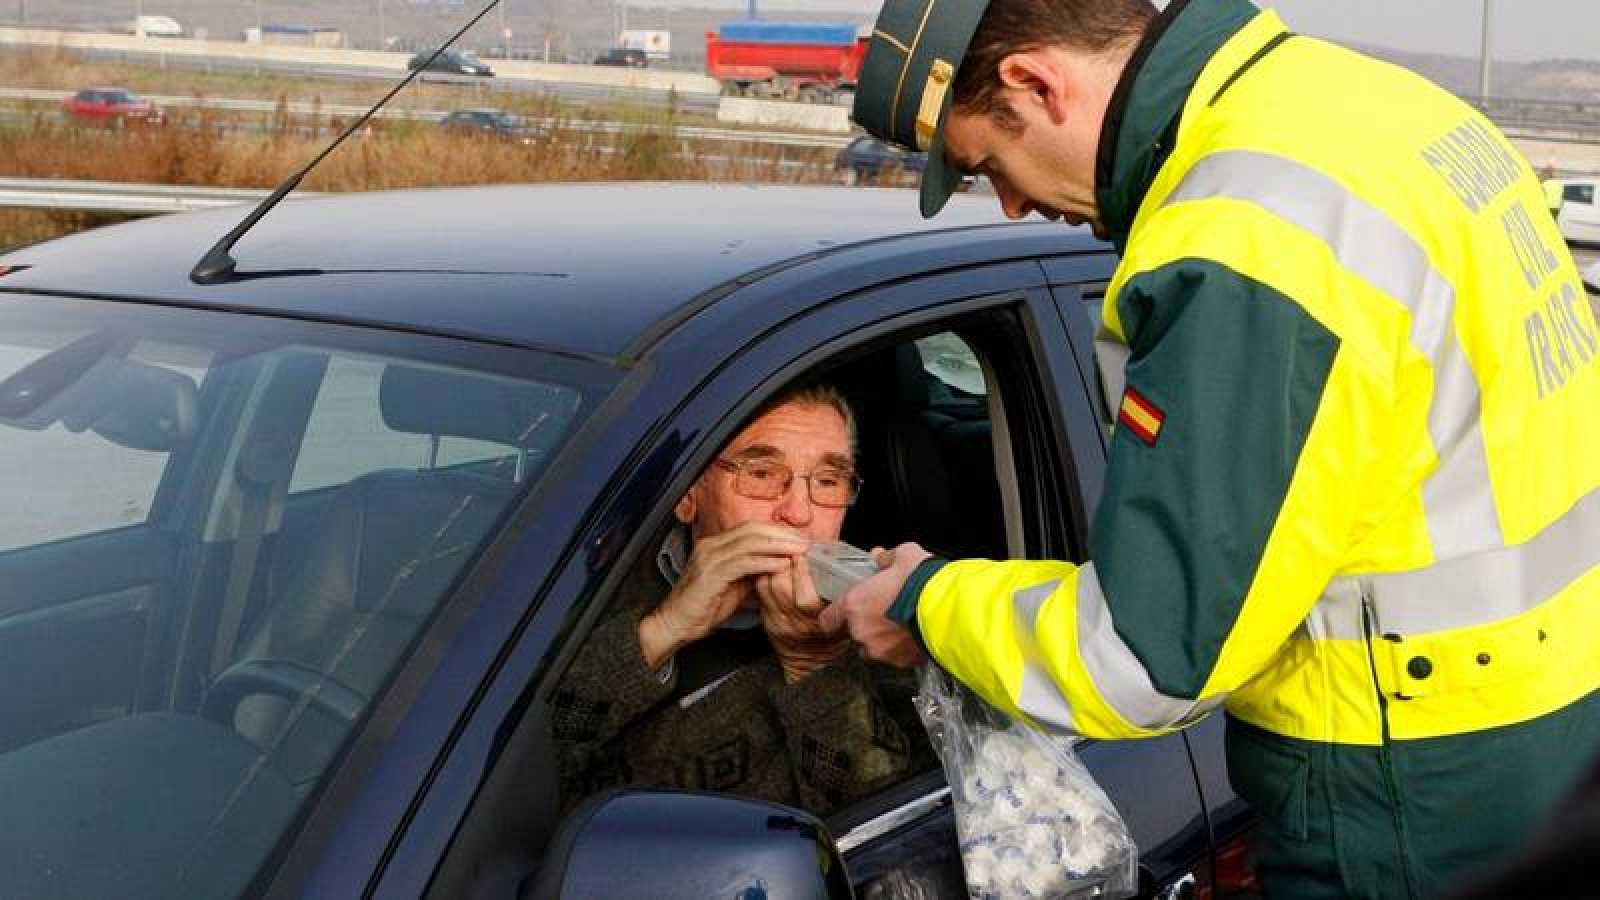 La Guardia Civil realiza un control de alcoholemia en Madrid.